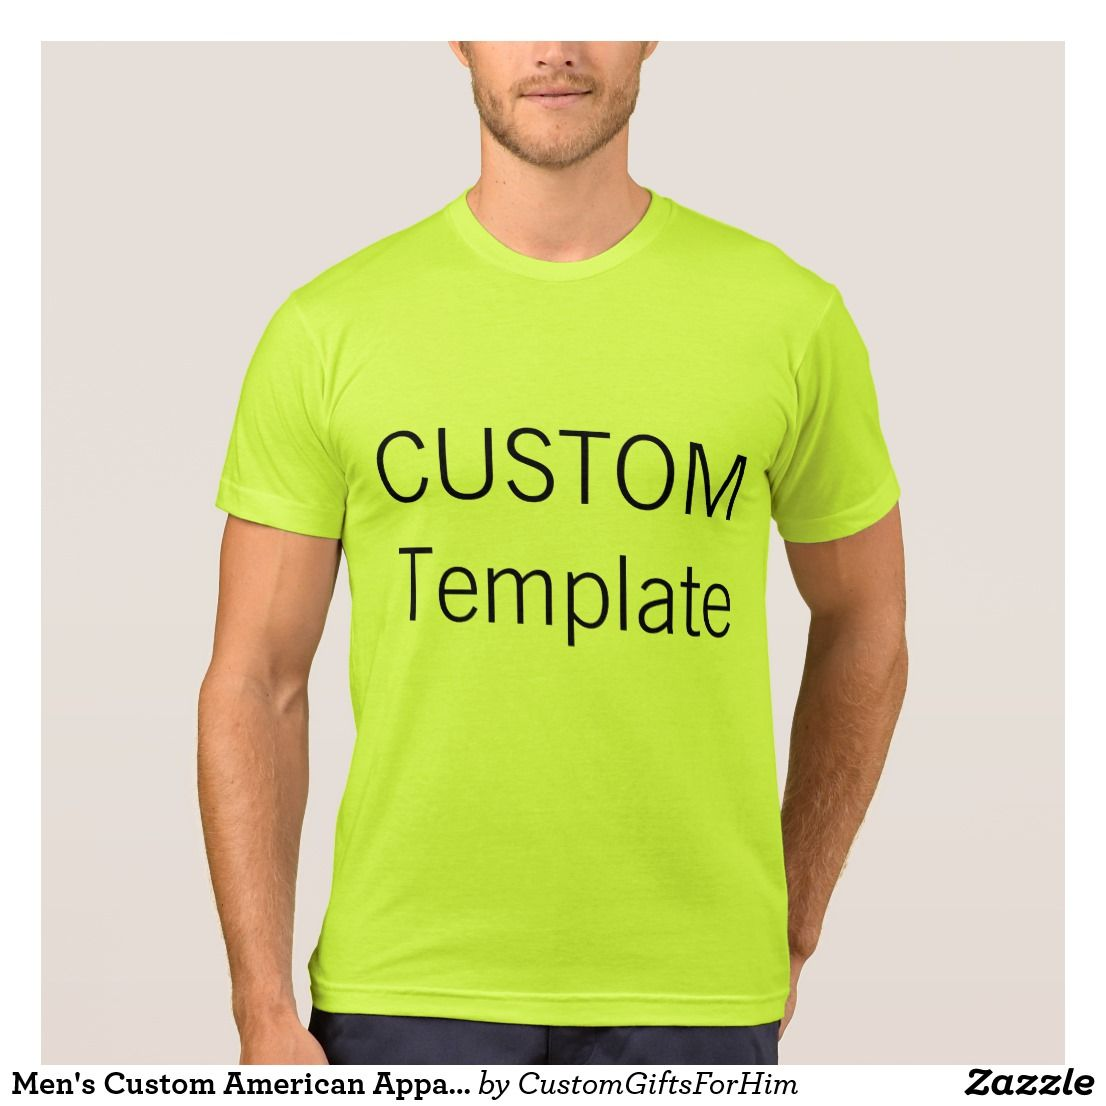 Men's Custom American Apparel T-Shirt NEON YELLOW